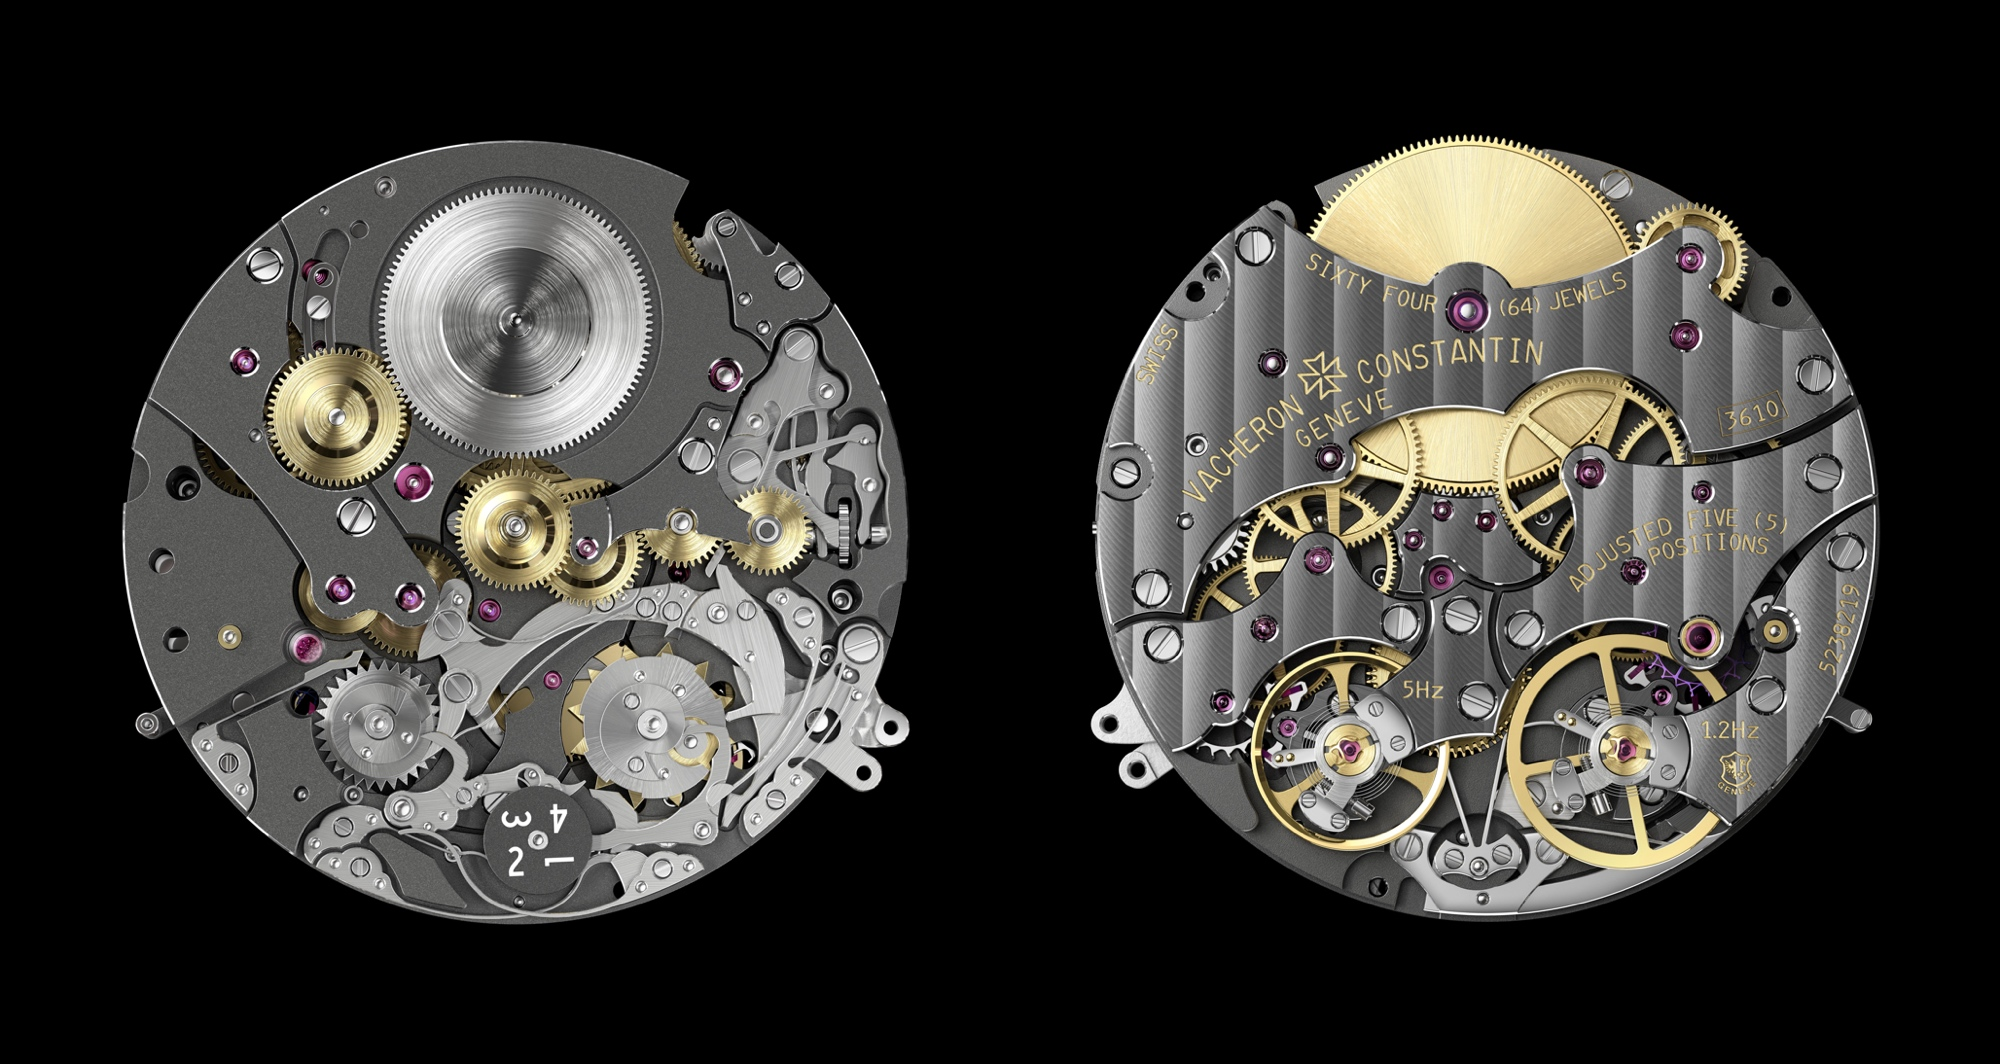 Vacheron Constantin Traditionnelle Twin Beat Perpetual Calendar - calibre 3610 front-back